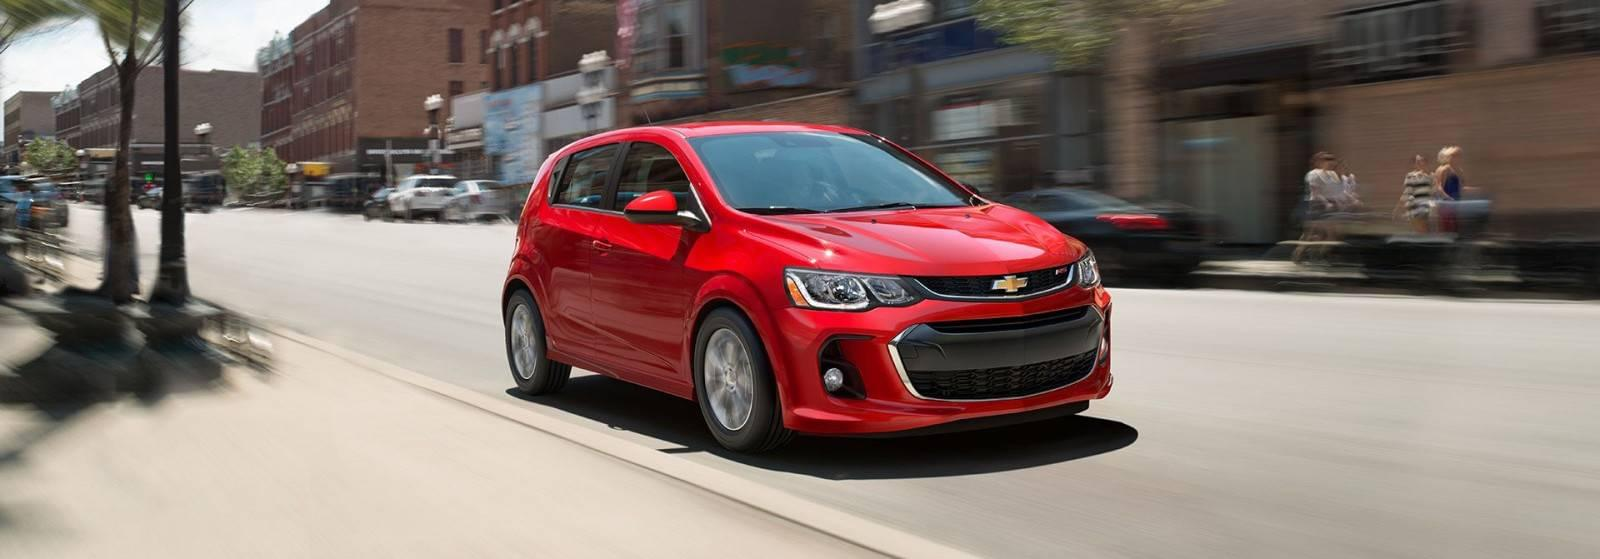 2017 Chevy Sonic Design